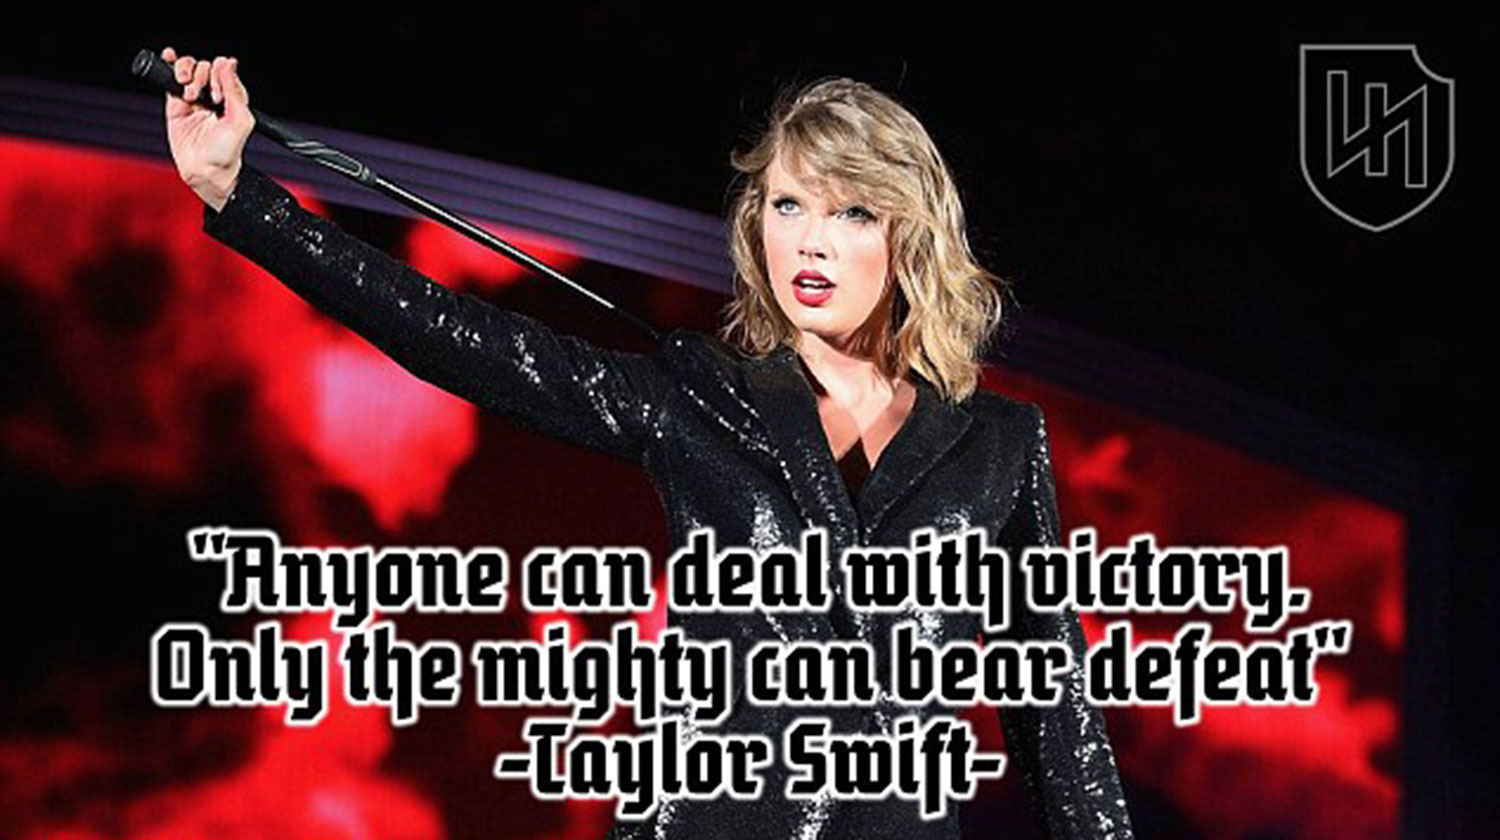 Bad Blood Quotes Taylor Swift Taylor Swift Hailed As A Nazi And Aryan Goddess By White